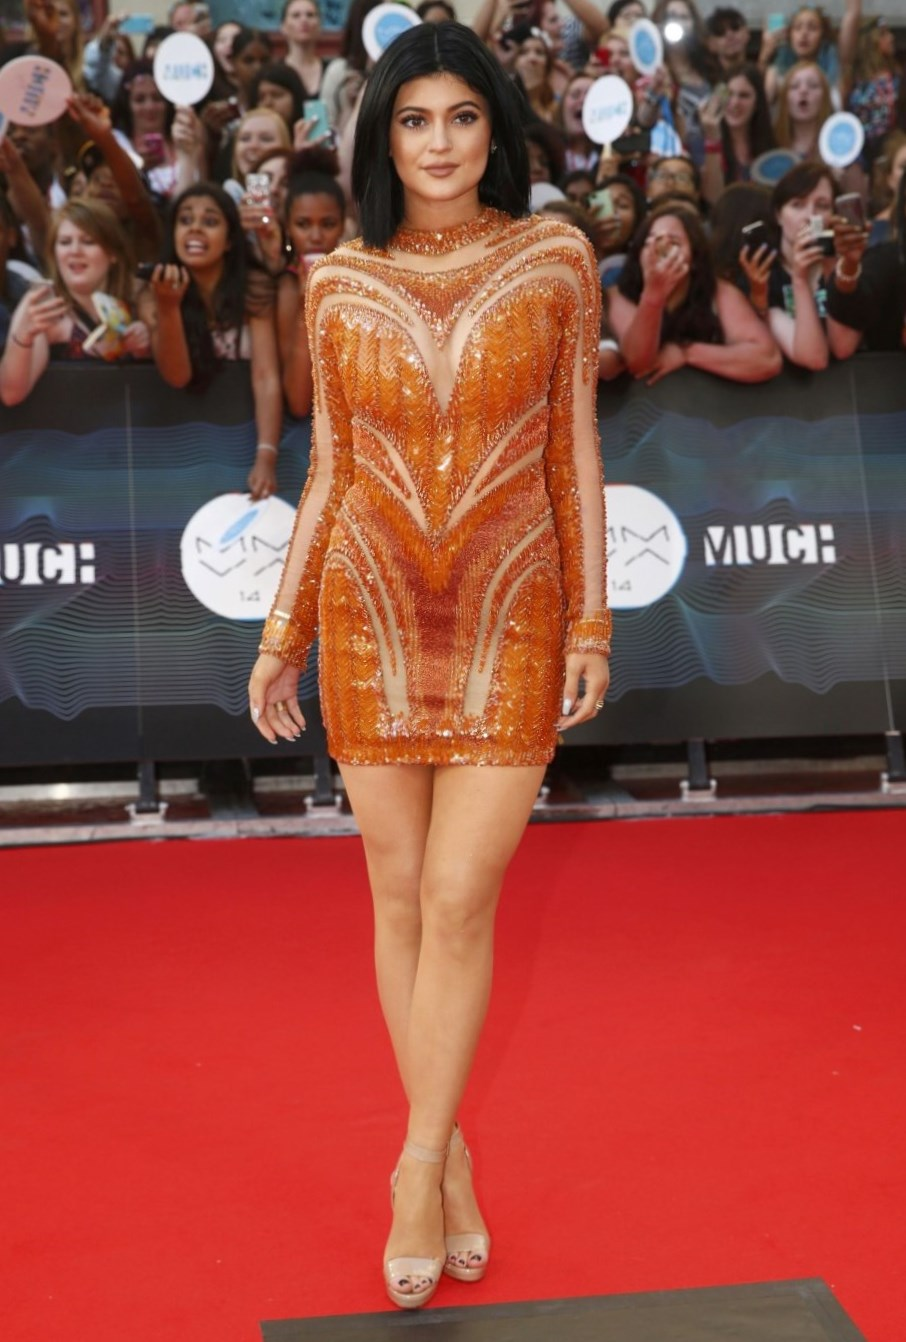 Kylie Jenner Weight Height And Age We Know It All